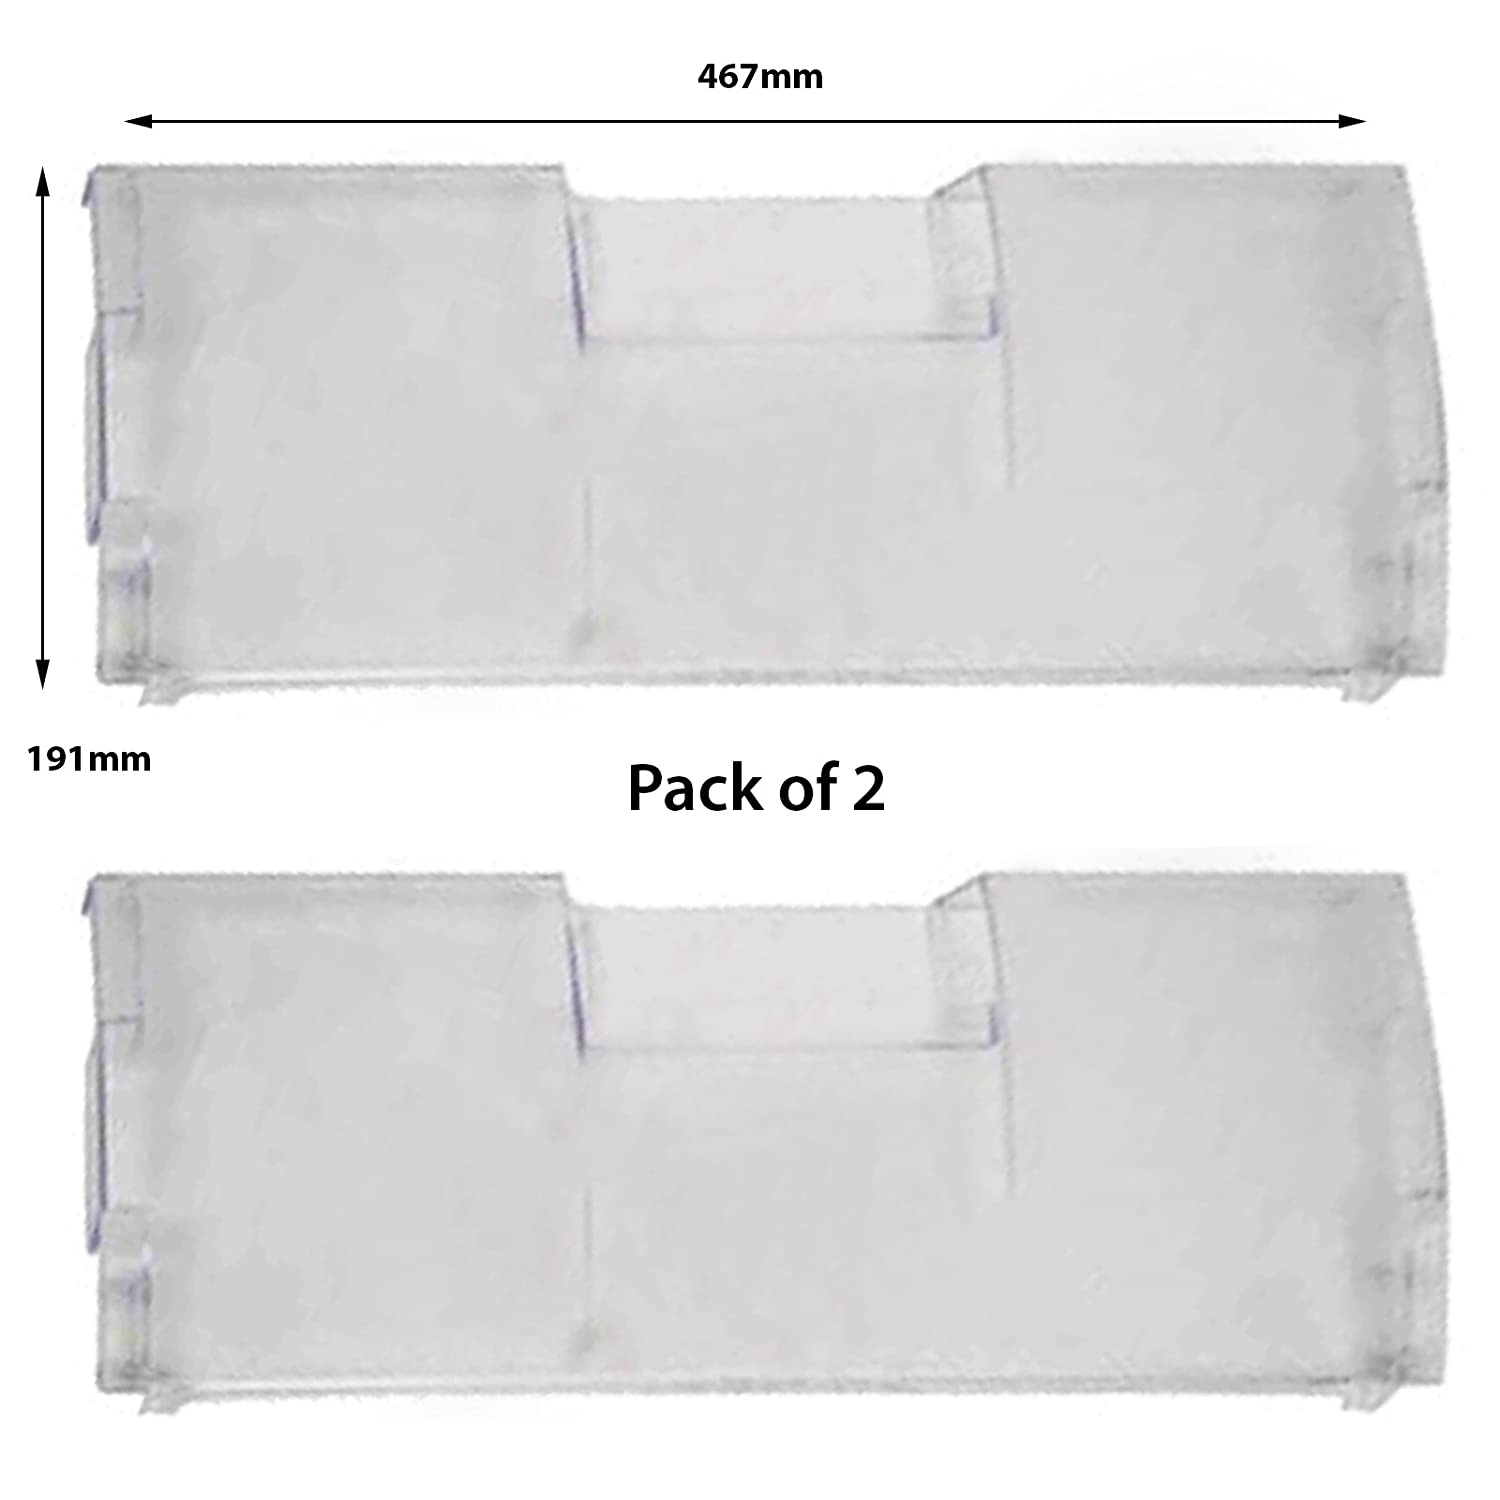 SPARES2GO Drawer Front Cover Flap for Beko Freezer (Pack of 2)